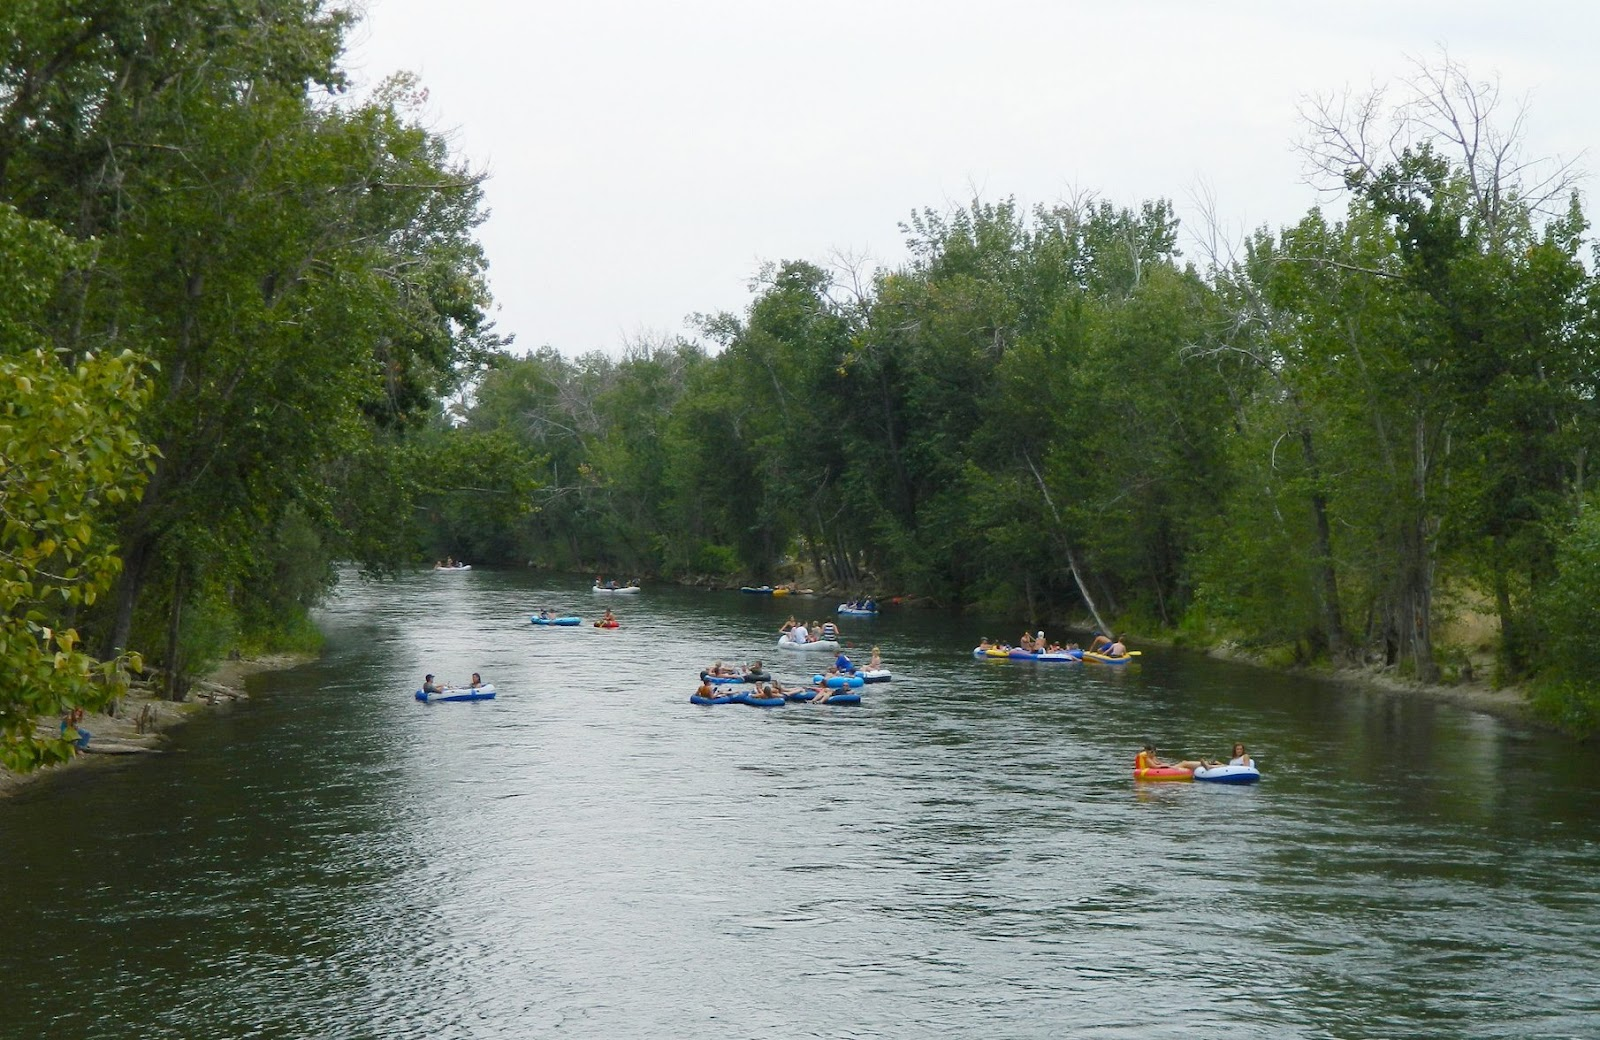 Living in idaho floaters on the boise river for Boise river fishing